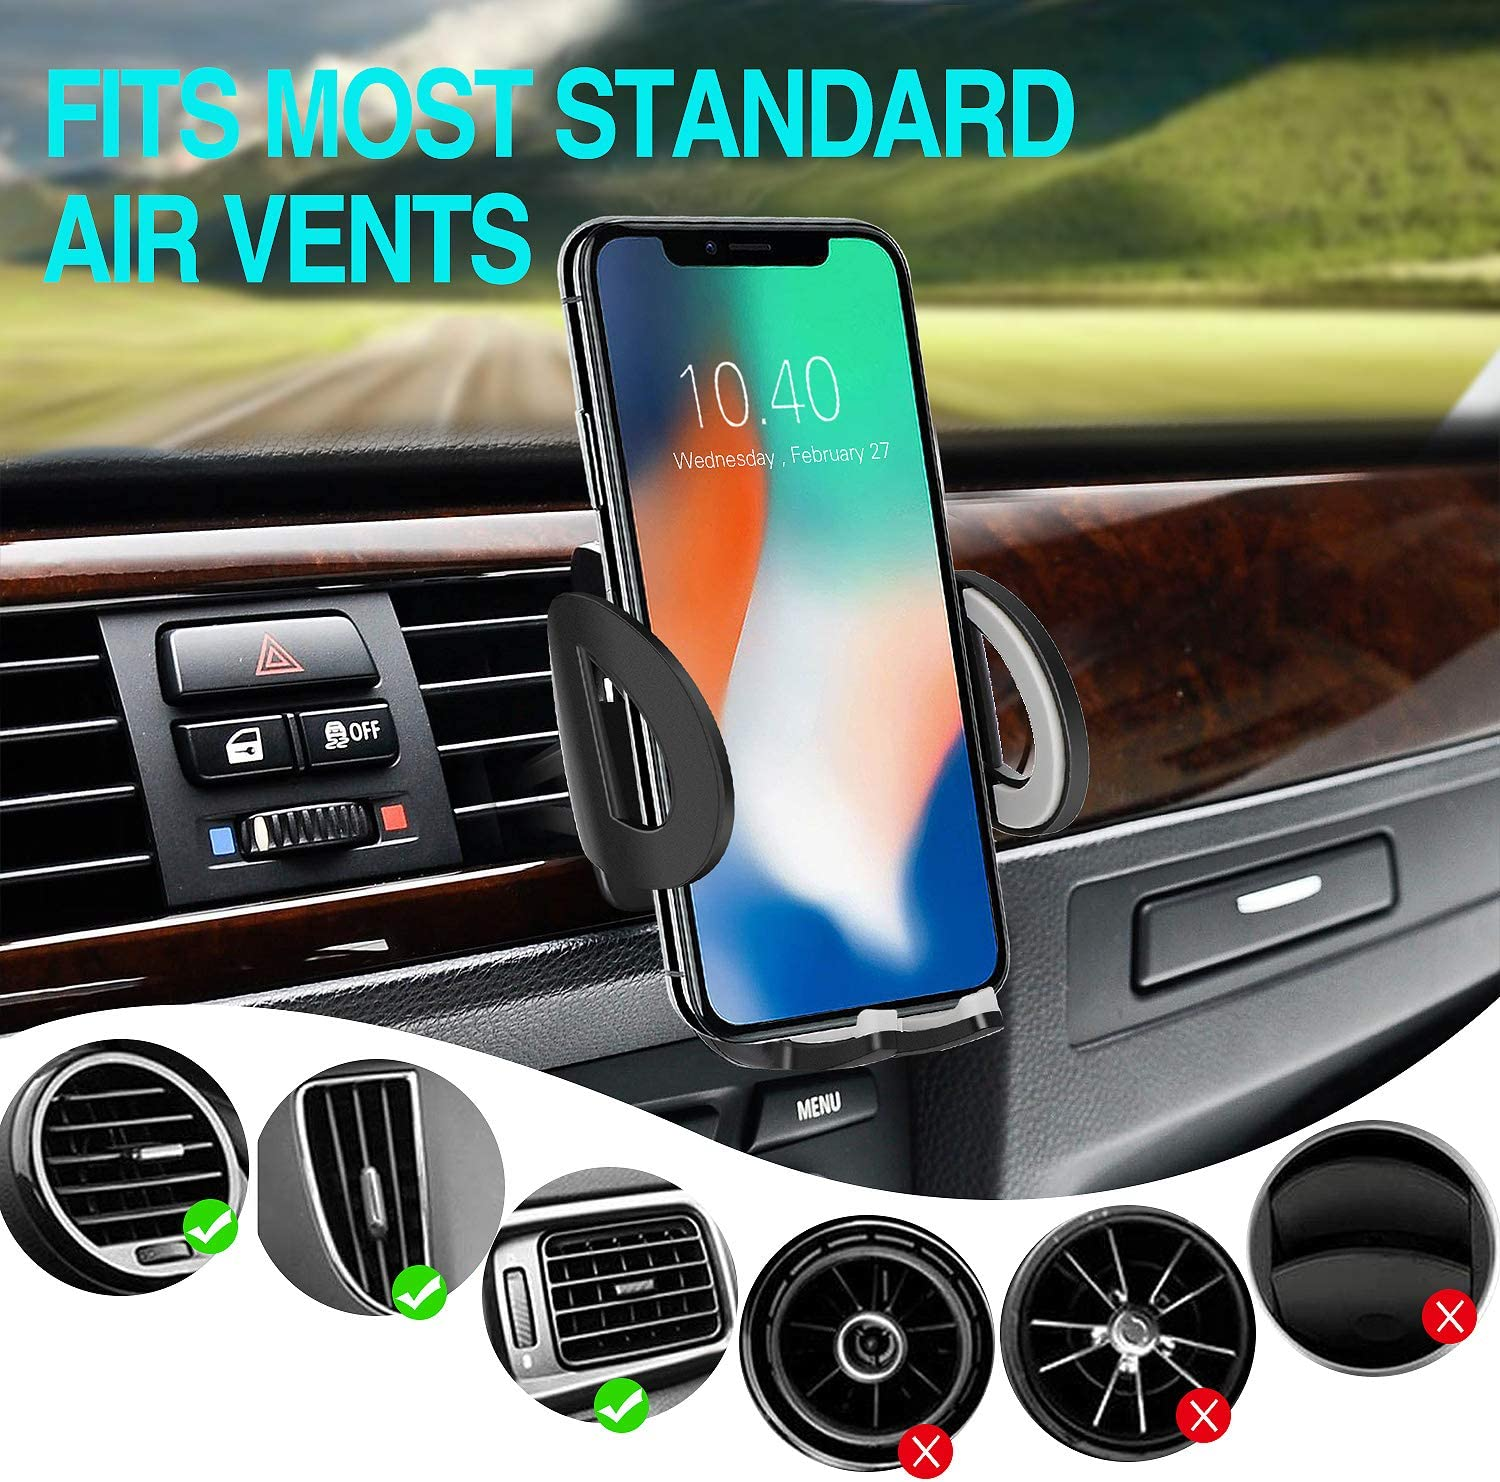 Car Phone Mount Air Vent Cell Phone Holder for Car Compatible with iPhone 11 Pro XS MAX XR X 8 7 6 Plus Samsung Galaxy S10 S9 S8 S7 S6 Note8 9 Google Pixel LG Nexus and Other Android Phones